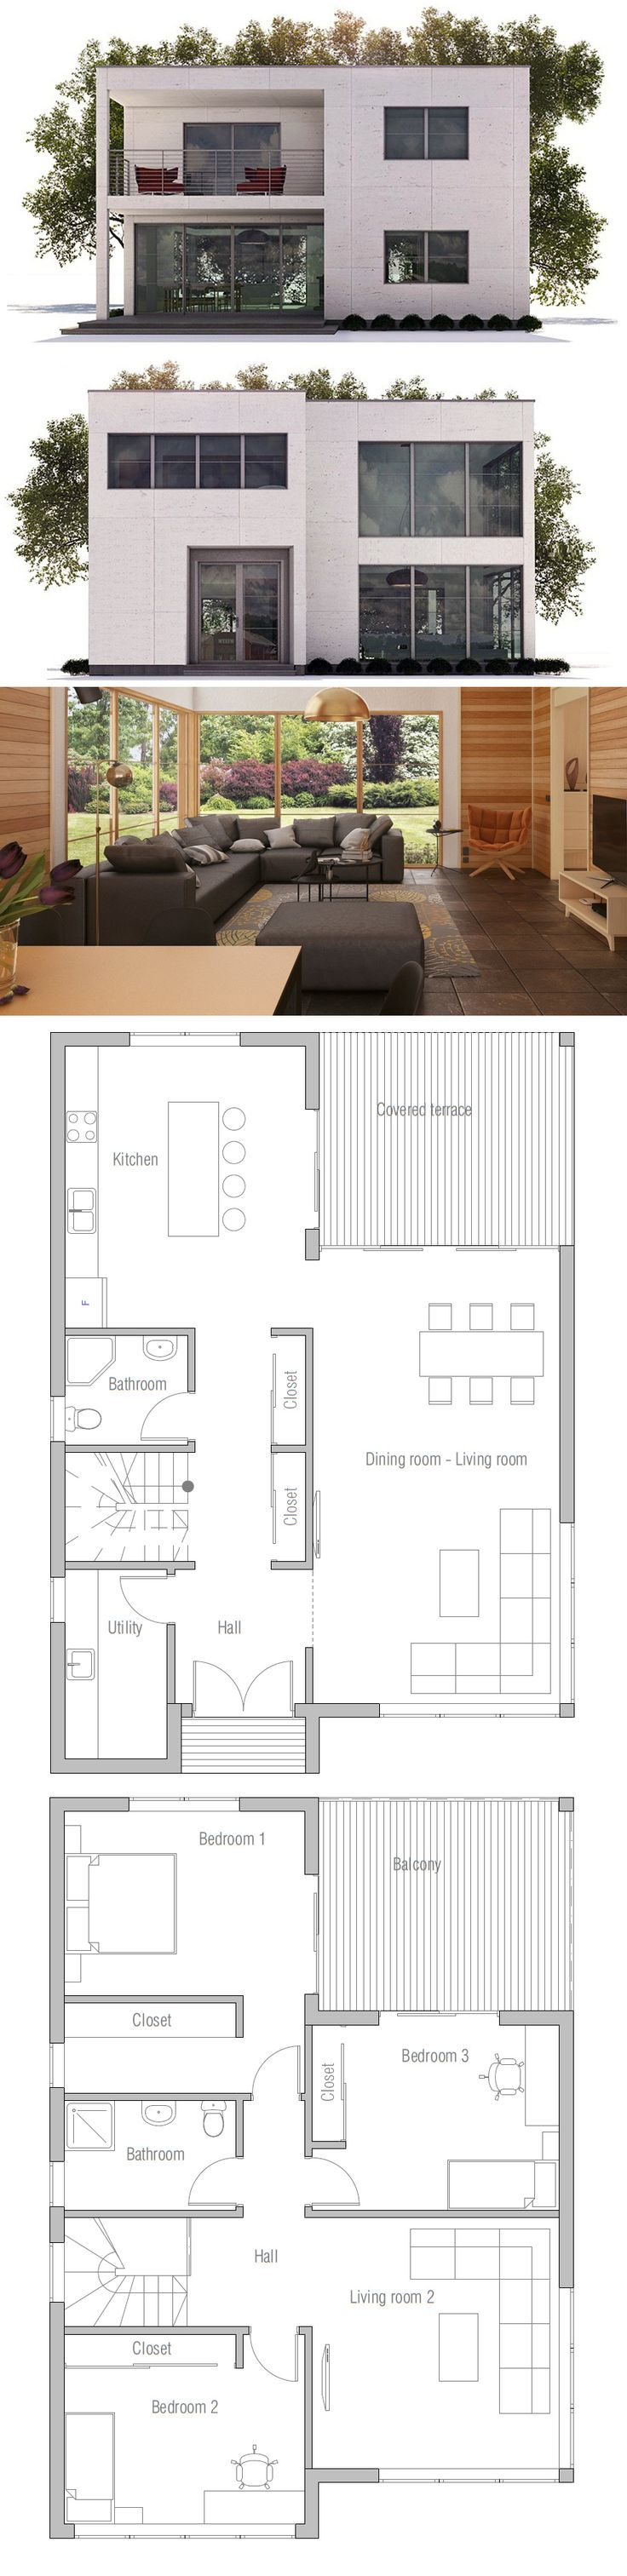 25 best ideas about Small House Plans on PinterestSmall home